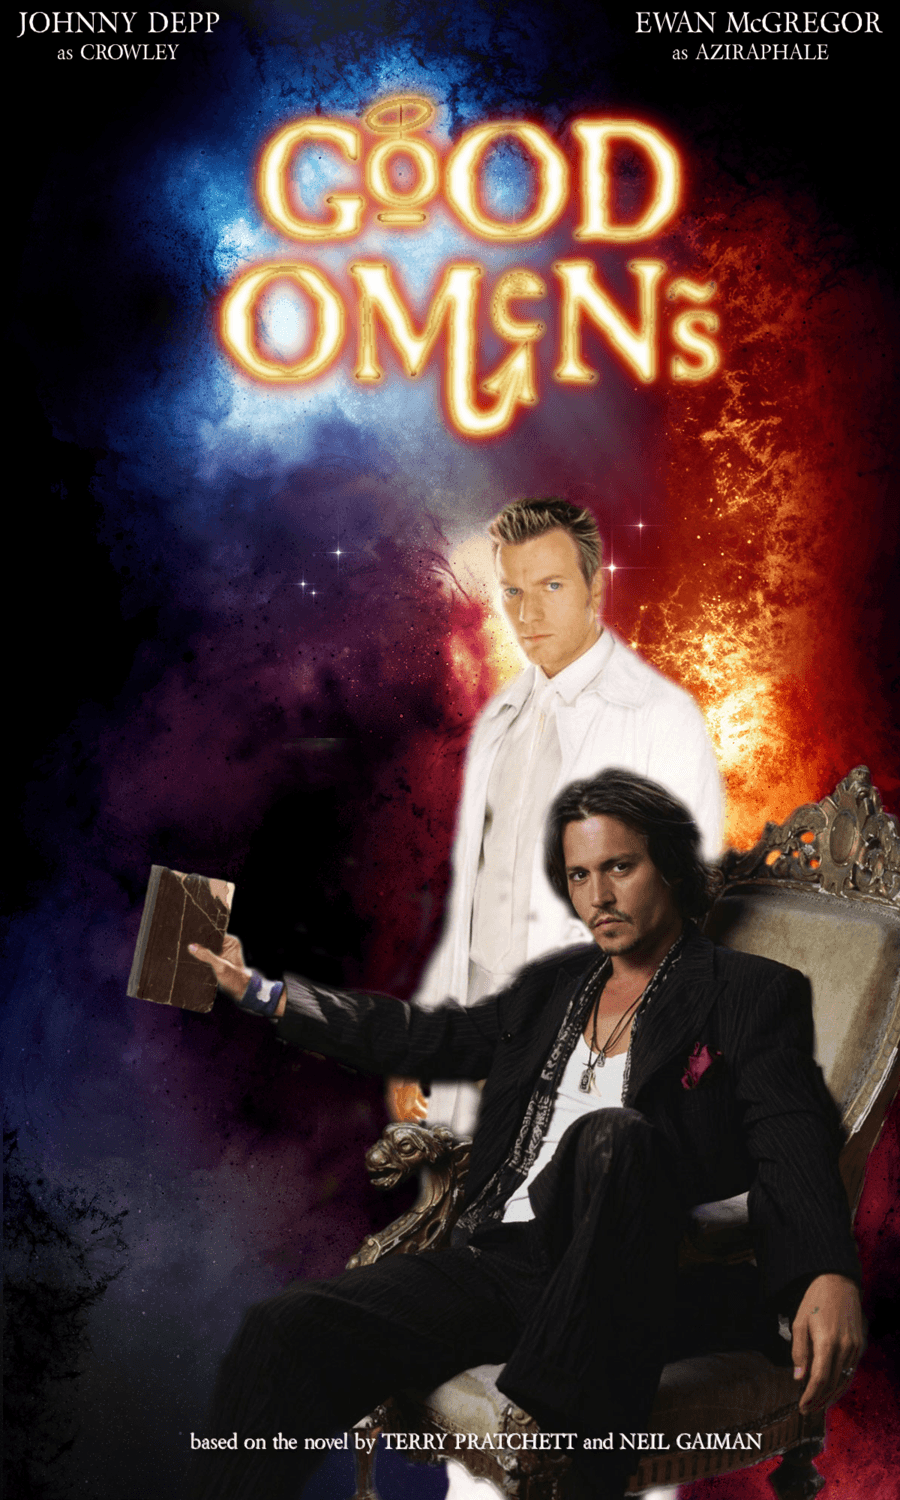 Good Omens, with Neil Gaiman